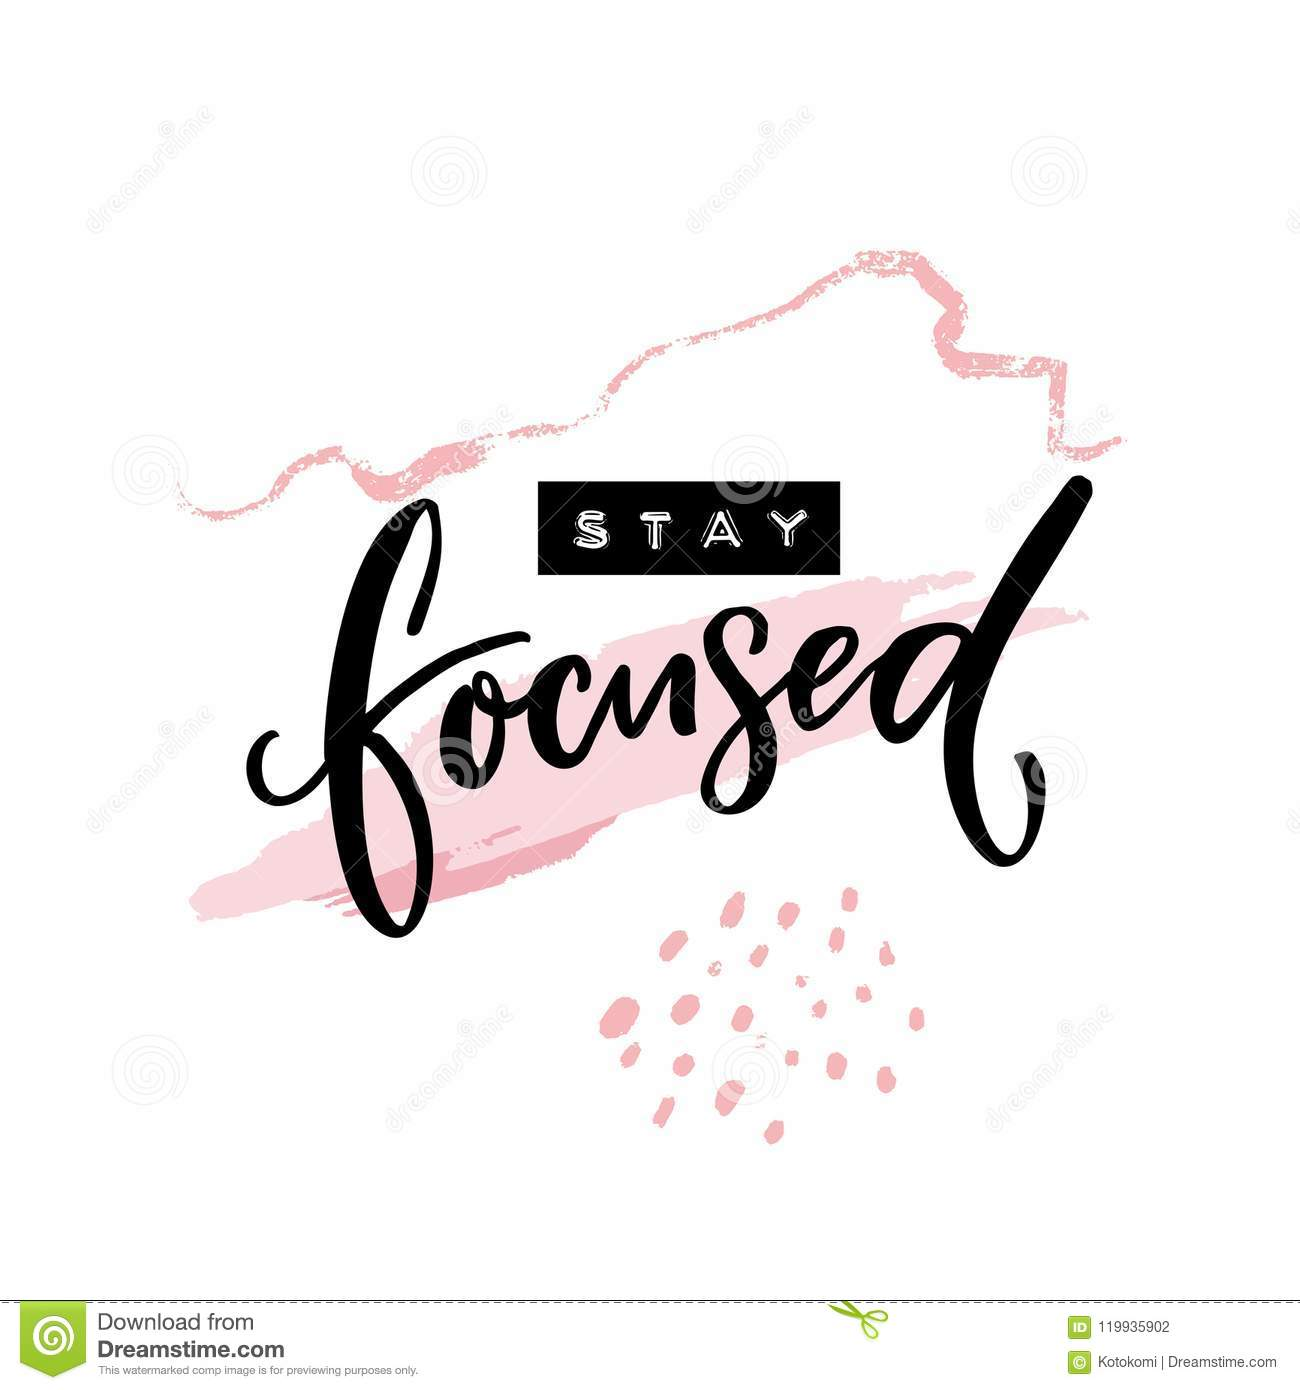 Stay Focused Quotes | Stay Focused Inscription Motivational Quote Handwritten